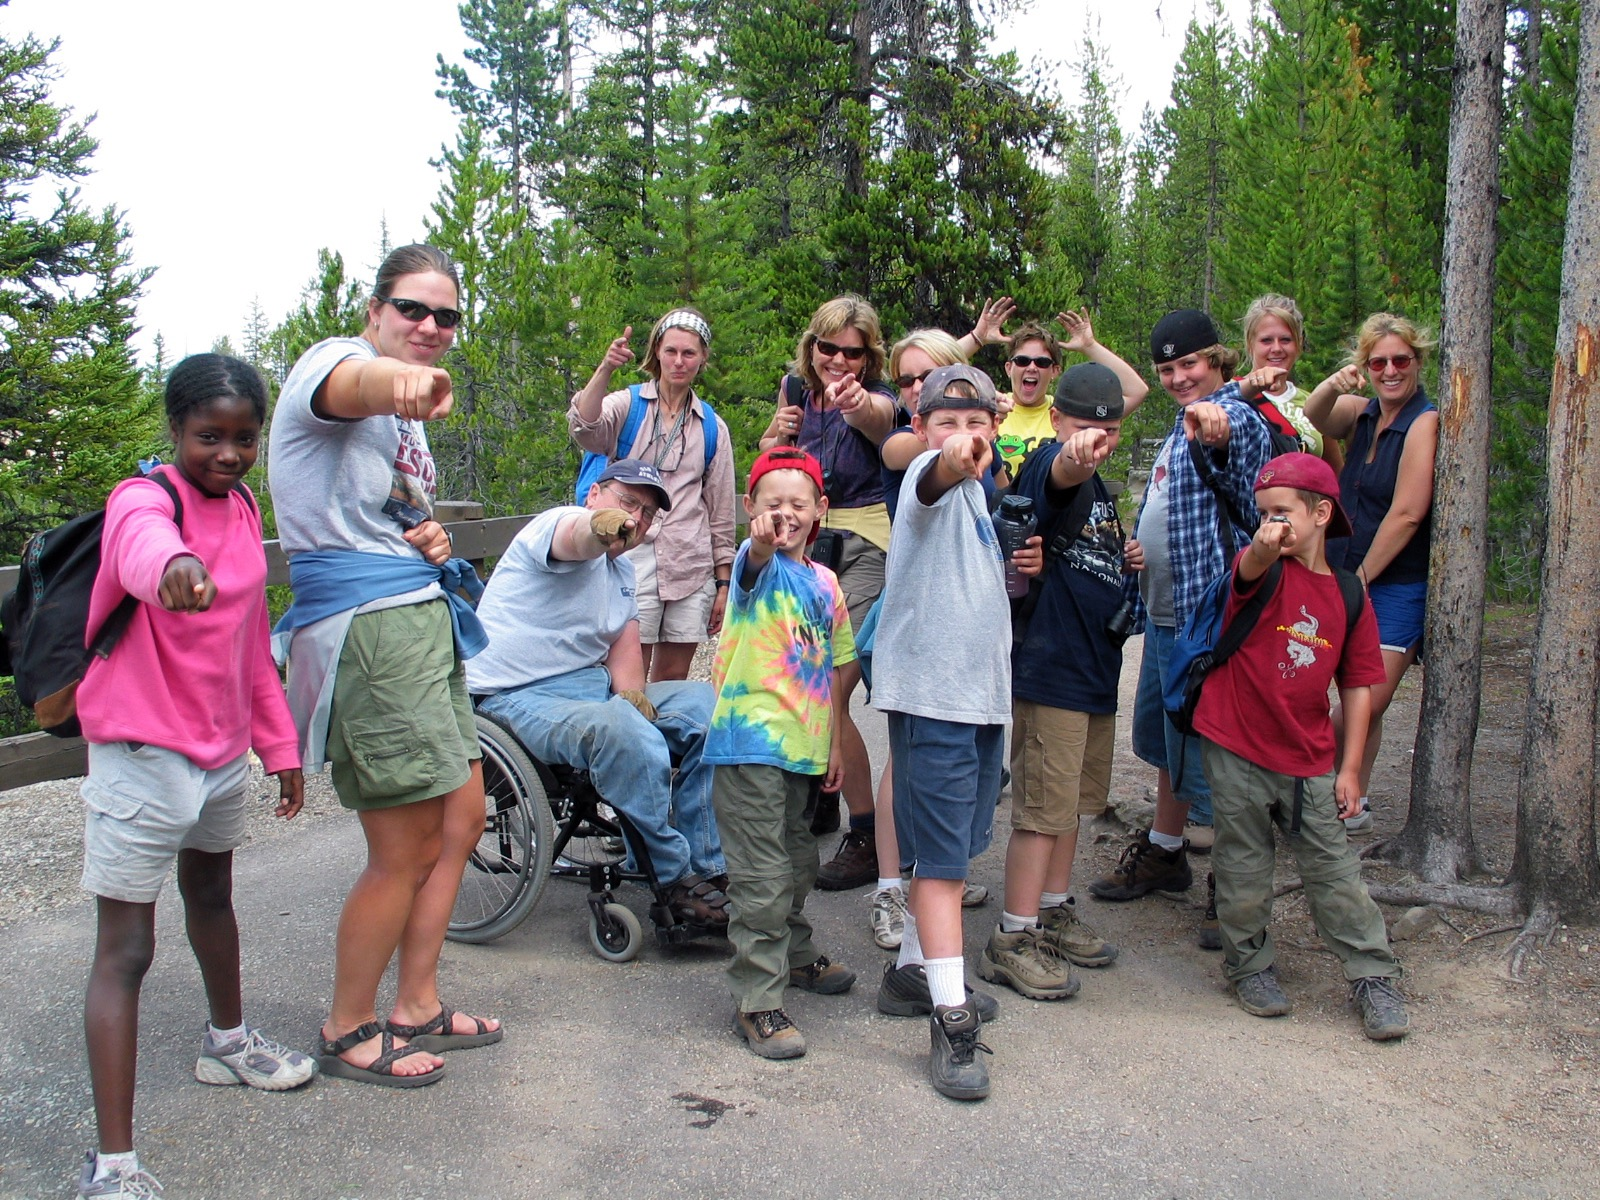 The group points towards the camera and poses for a picture near Mount Washburn.